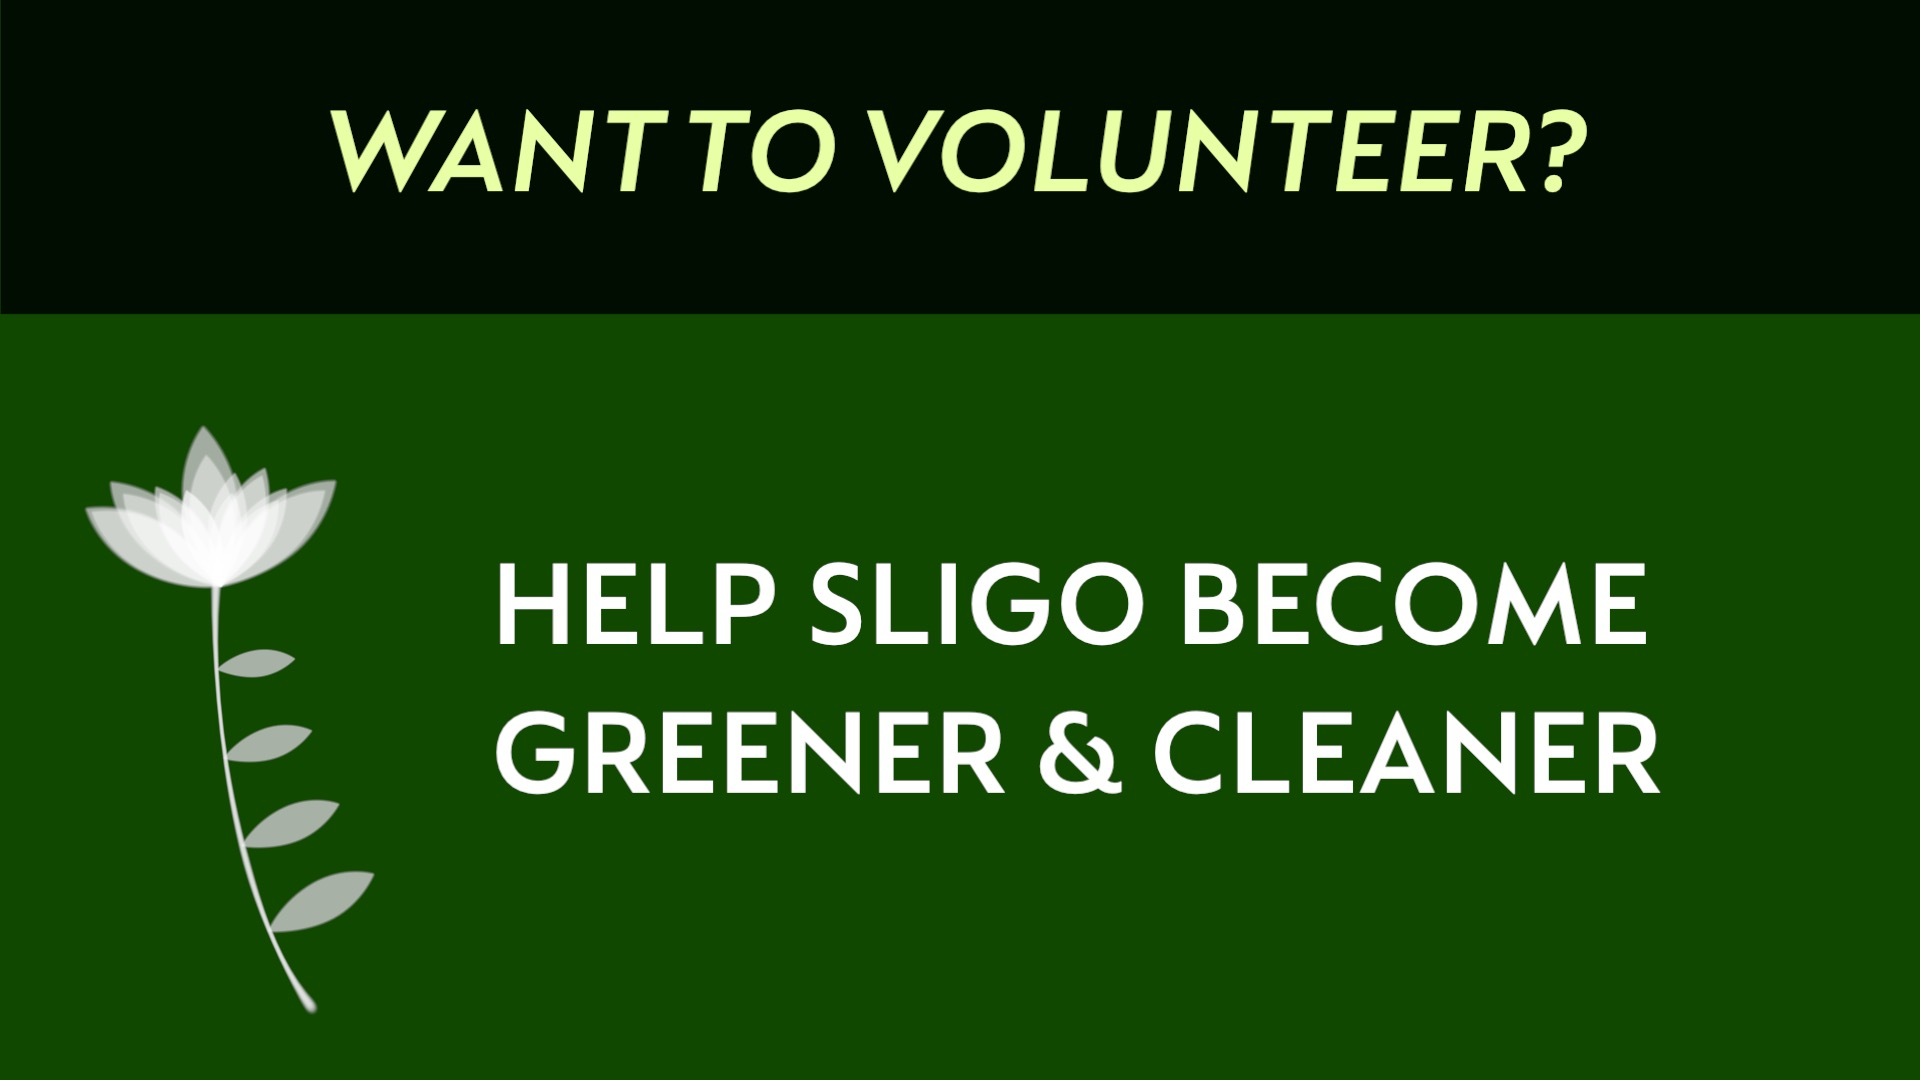 BLog 5 - Tips on Volunteering in Sligo